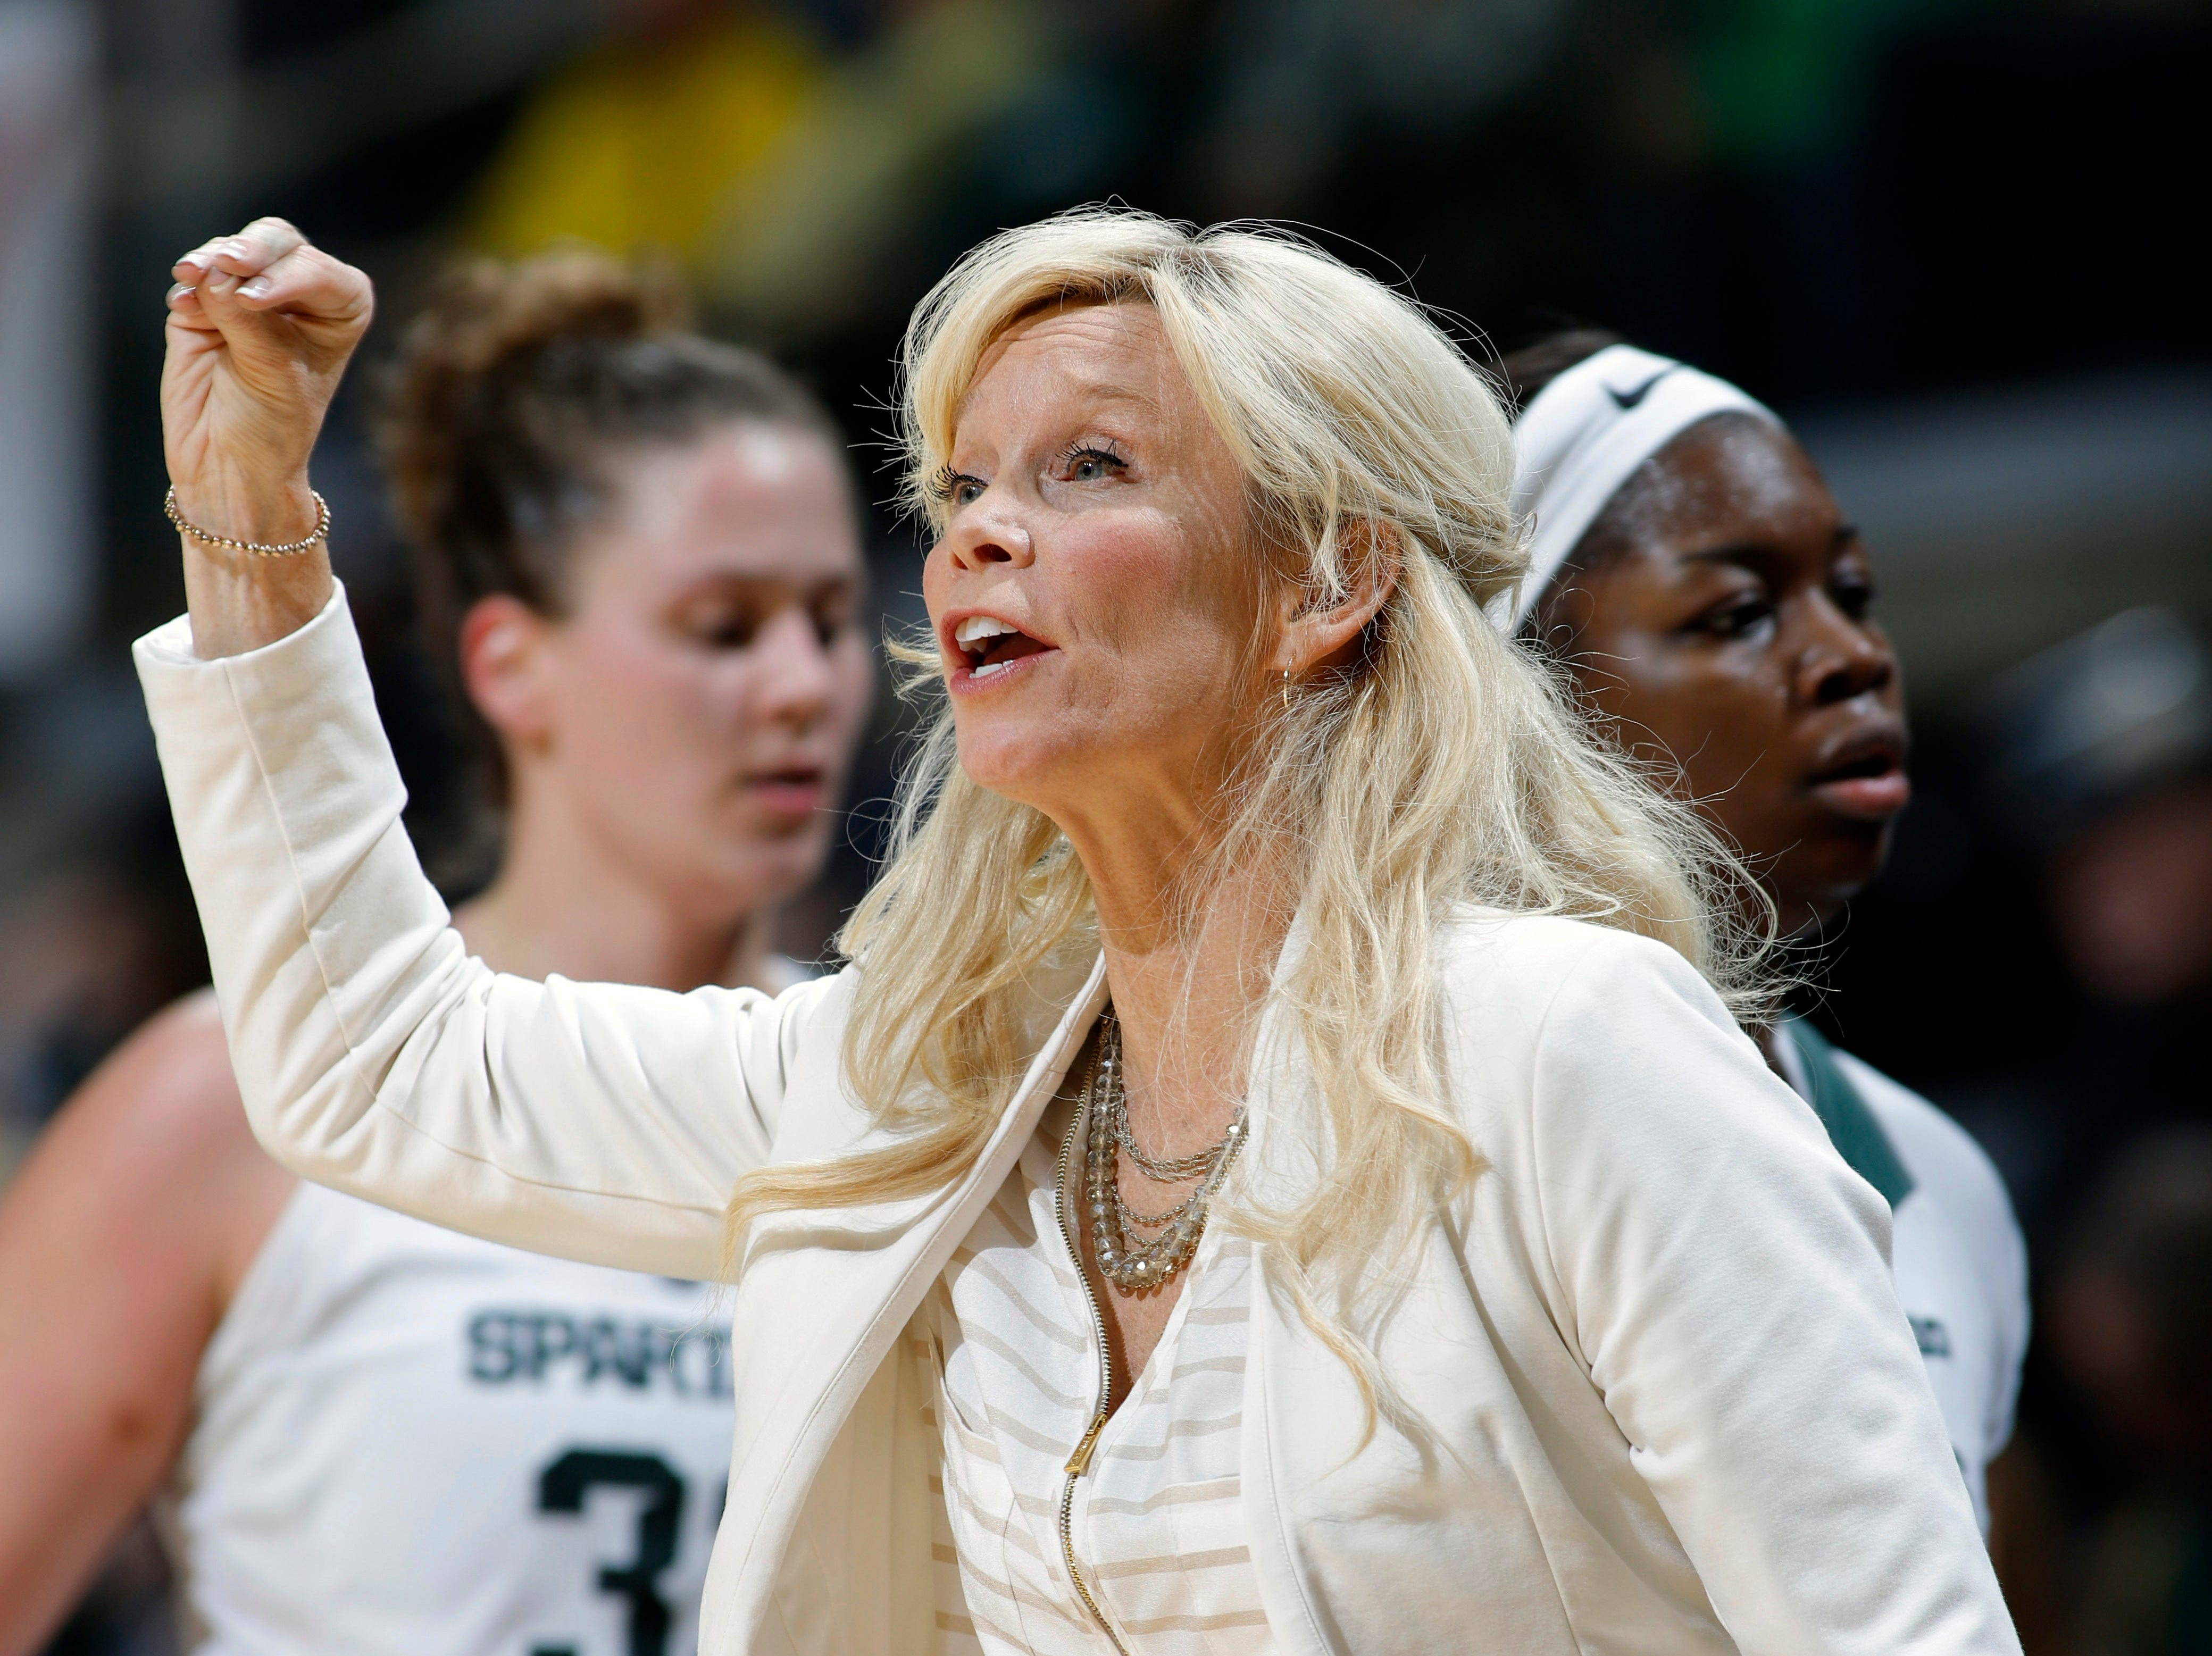 Michigan State coach Suzy Merchant gives instructions against Michigan during the third quarter.